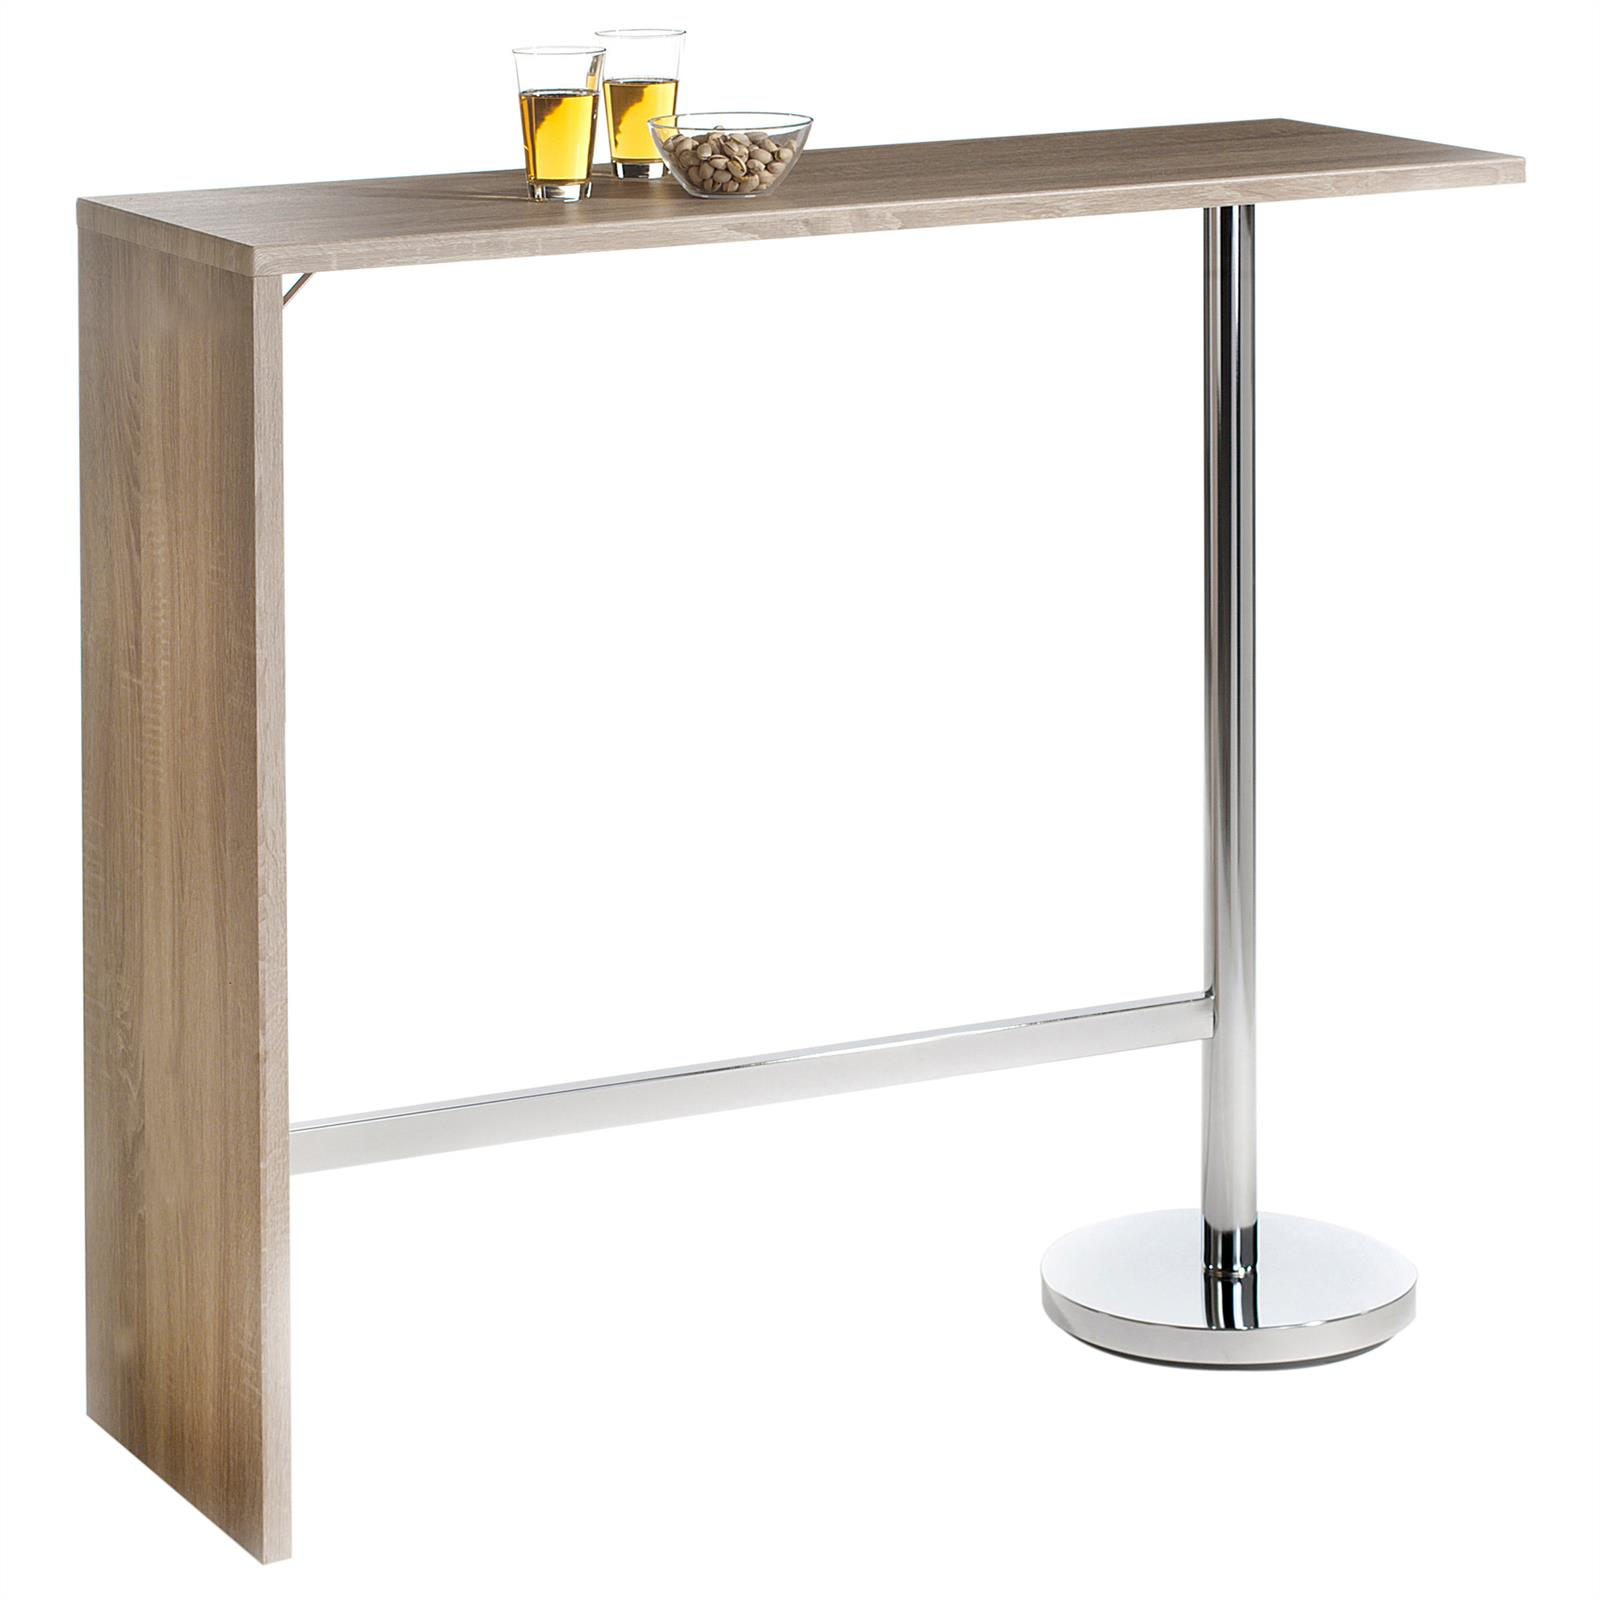 table haute de bar mange debout mdf 3 coloris disponibles ebay. Black Bedroom Furniture Sets. Home Design Ideas